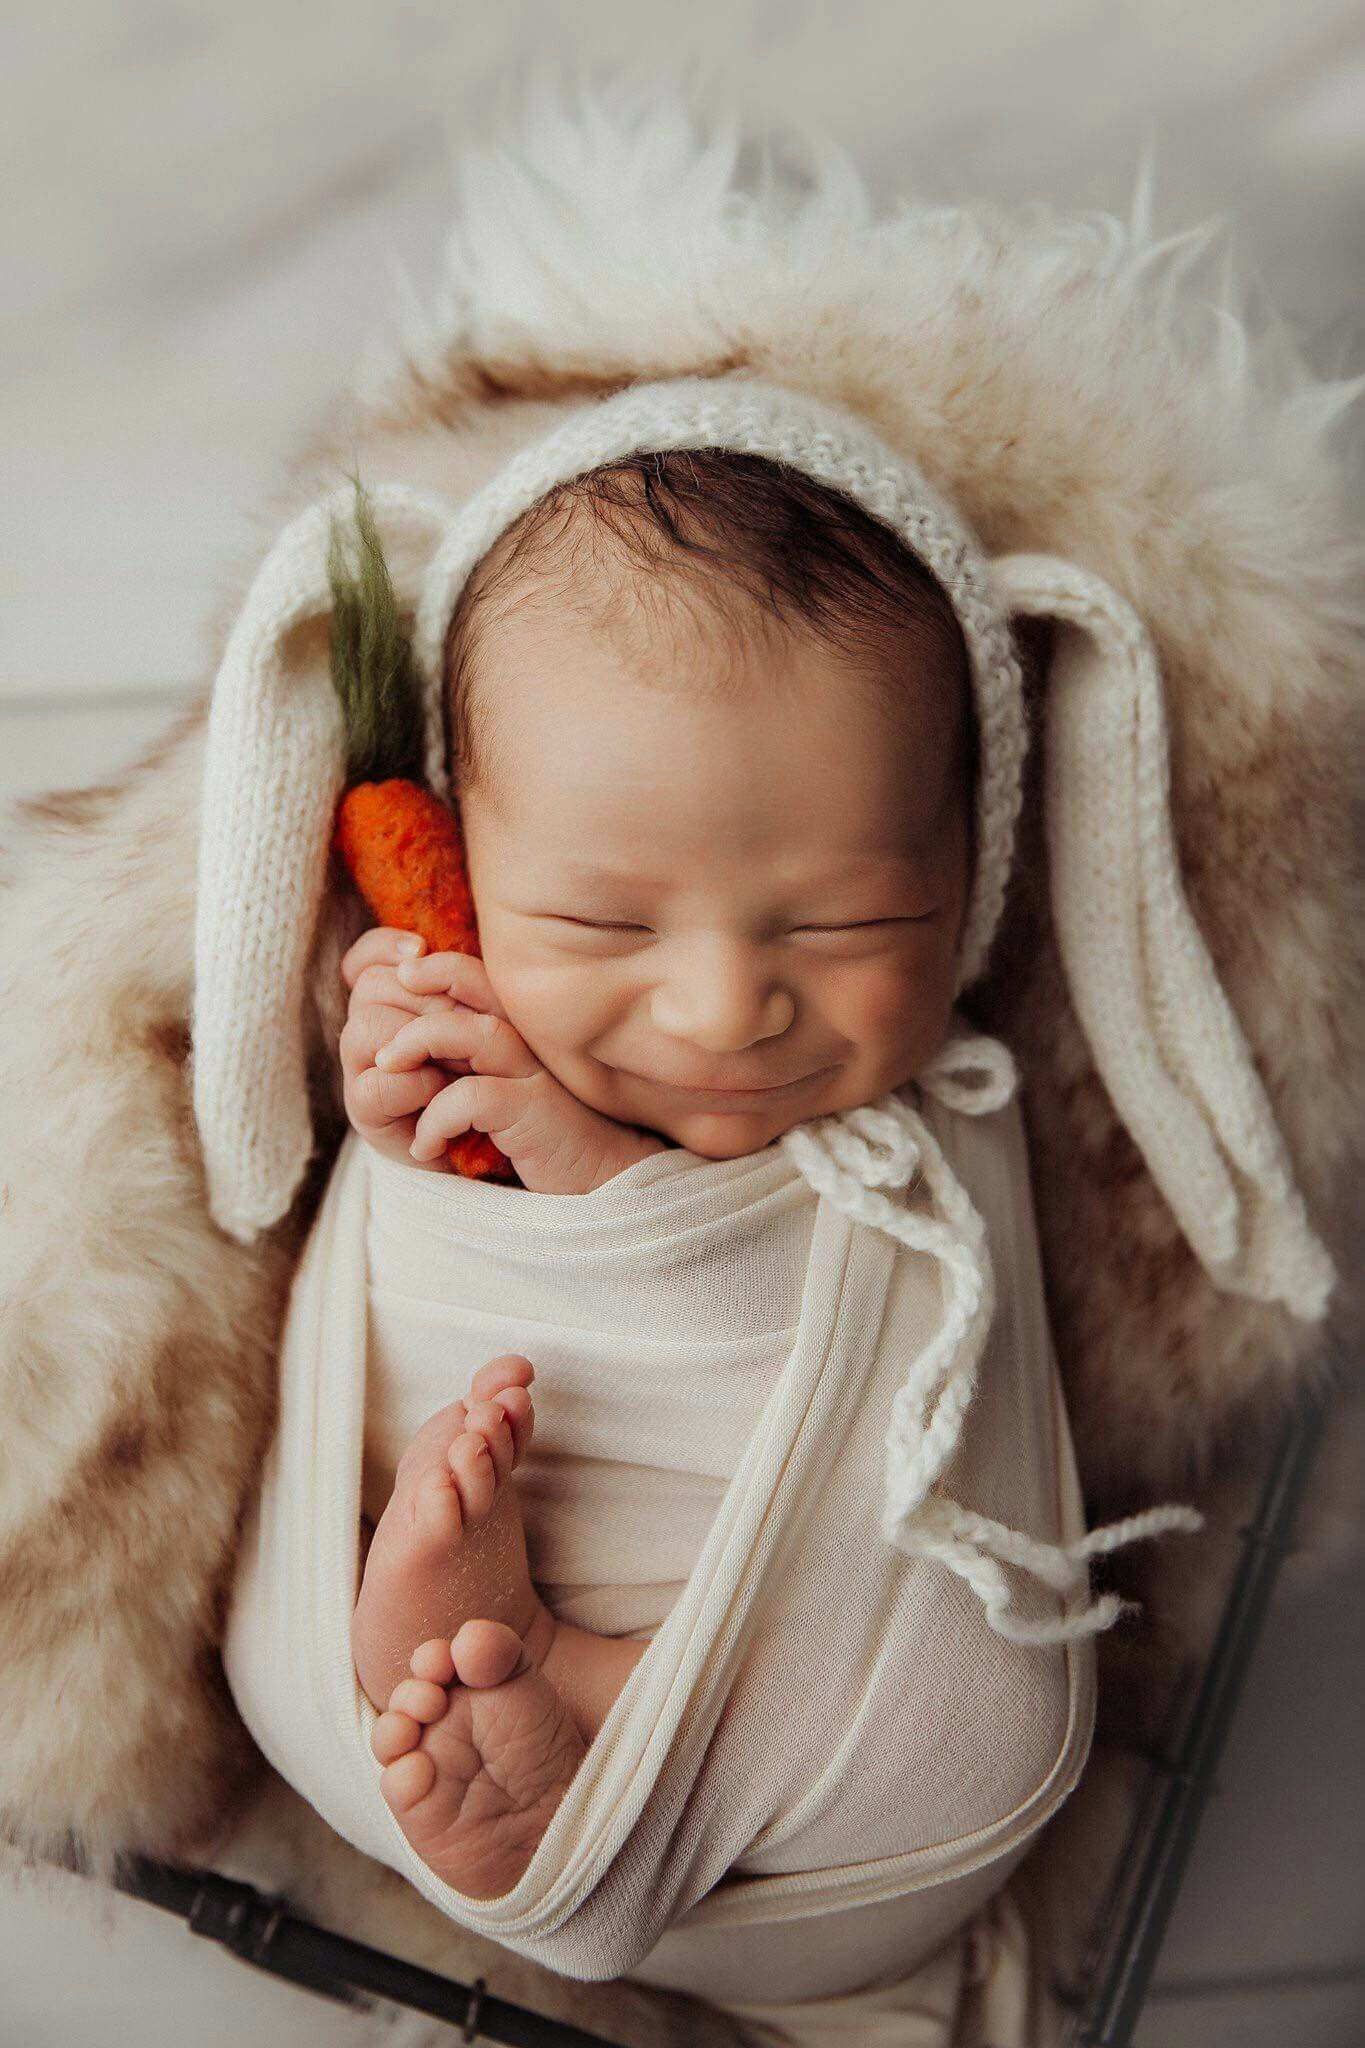 Baby photoshoot ideas for the home